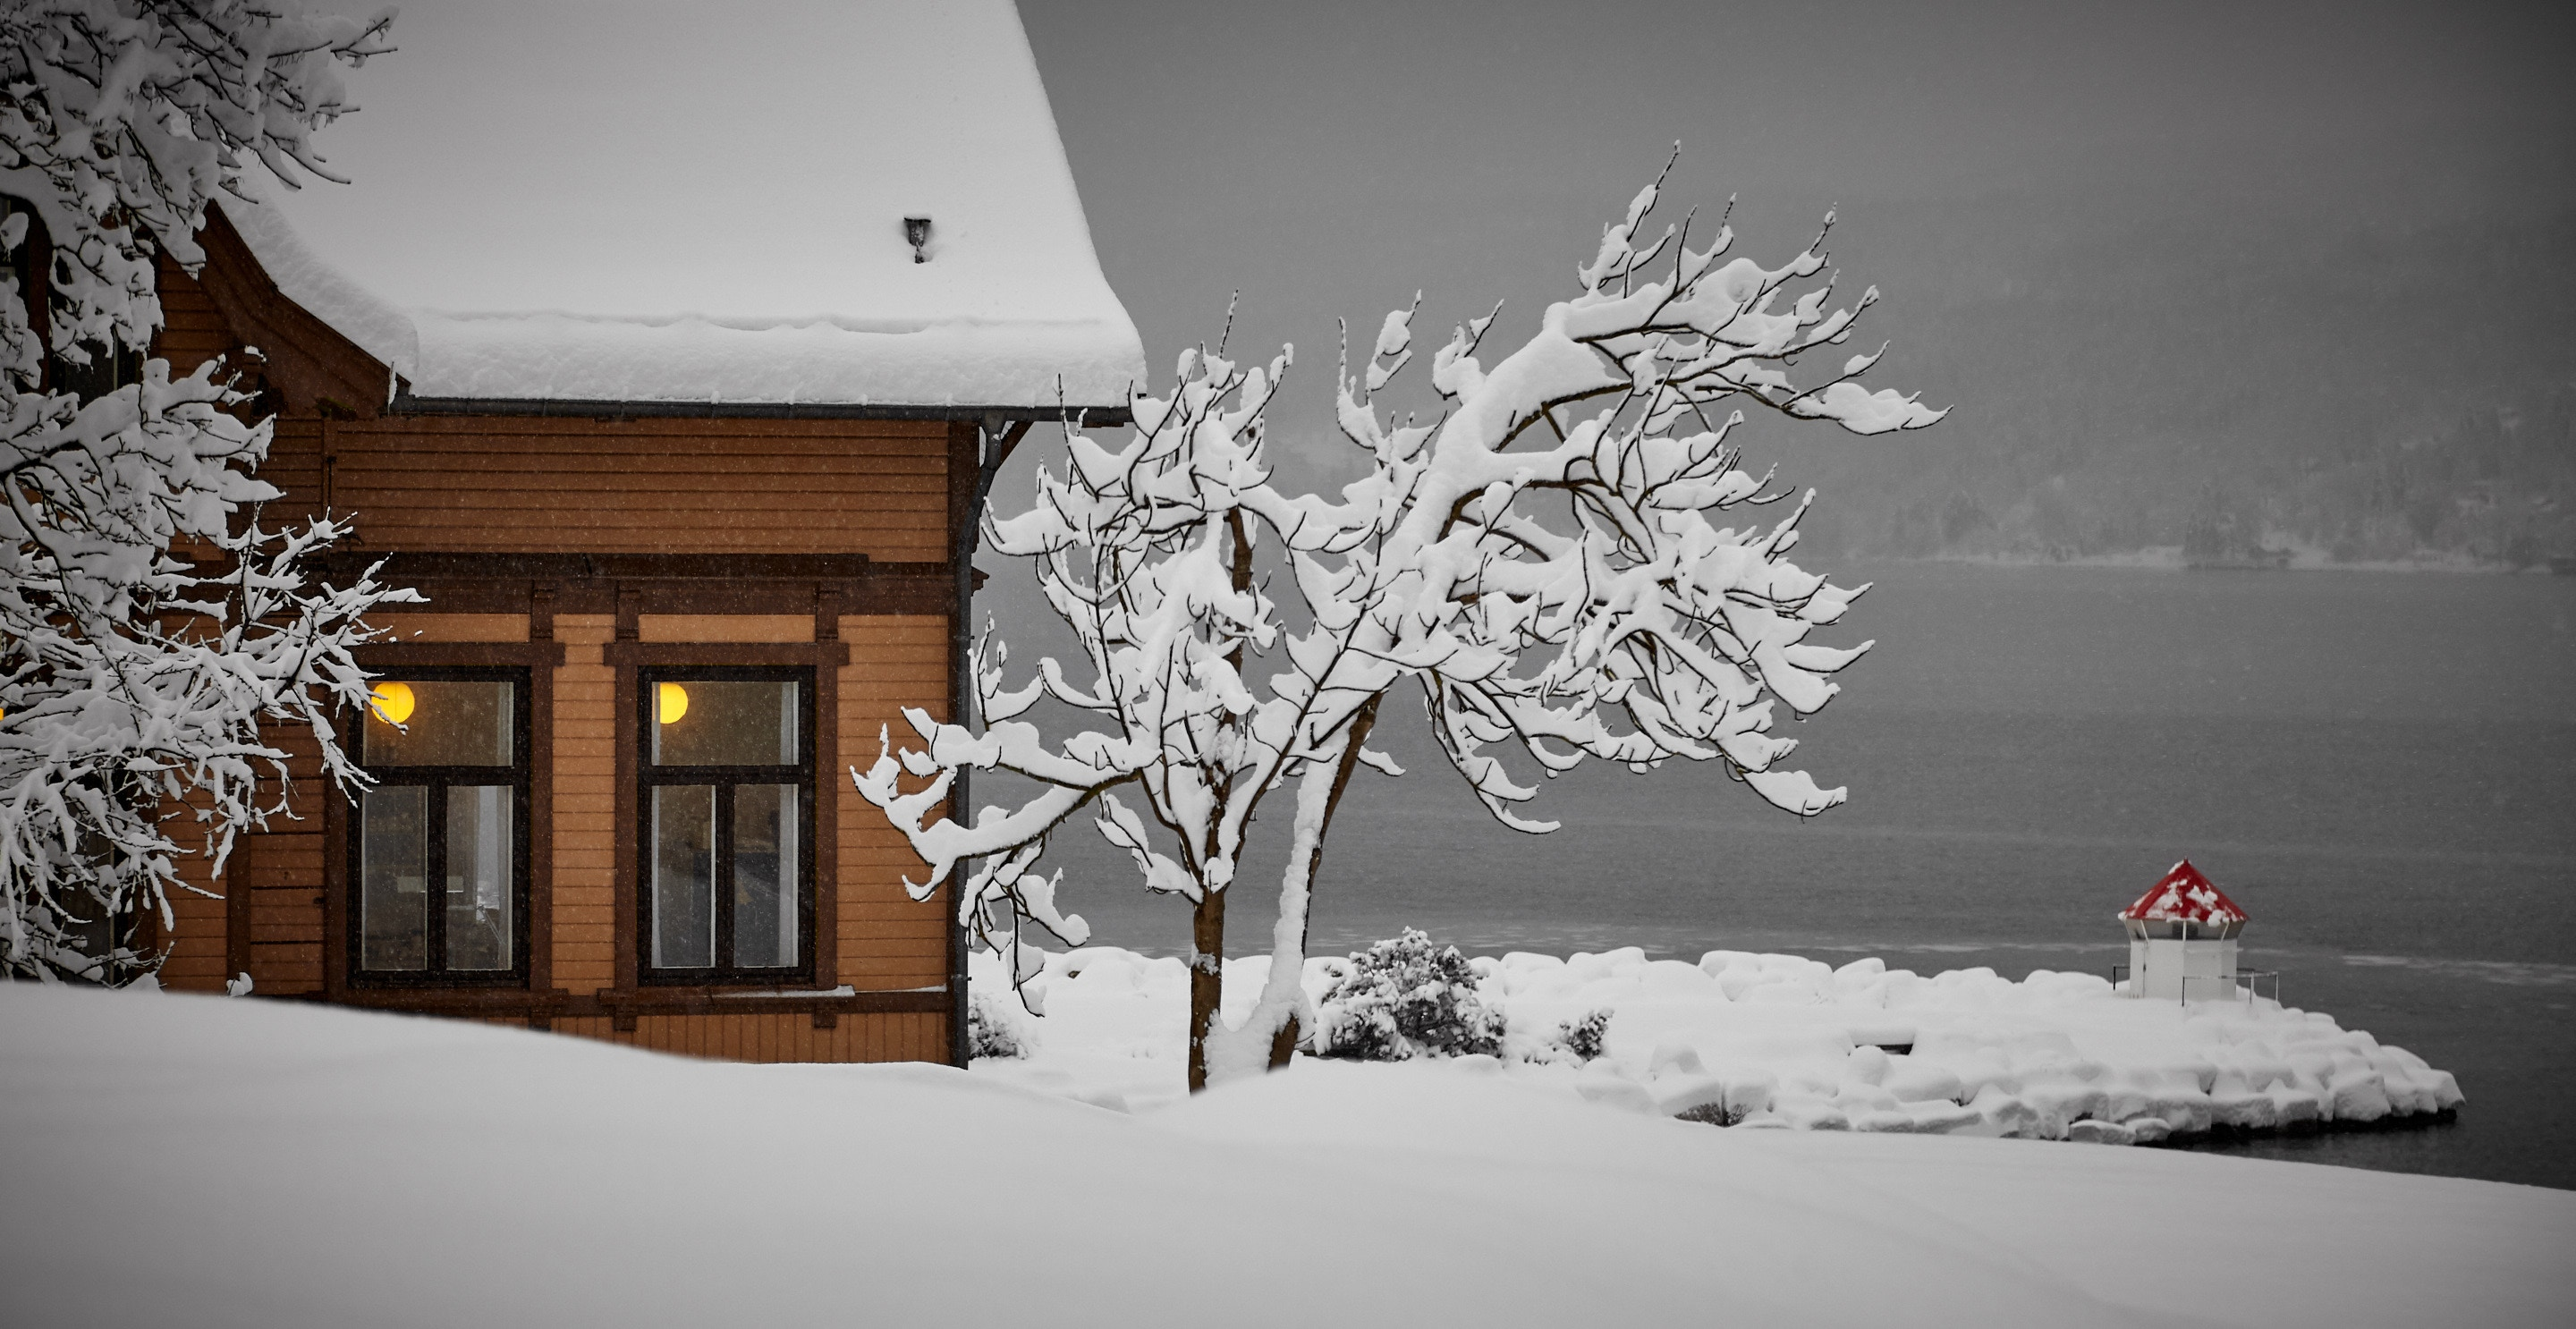 Plumbing Services to Consider Before Winter Strikes